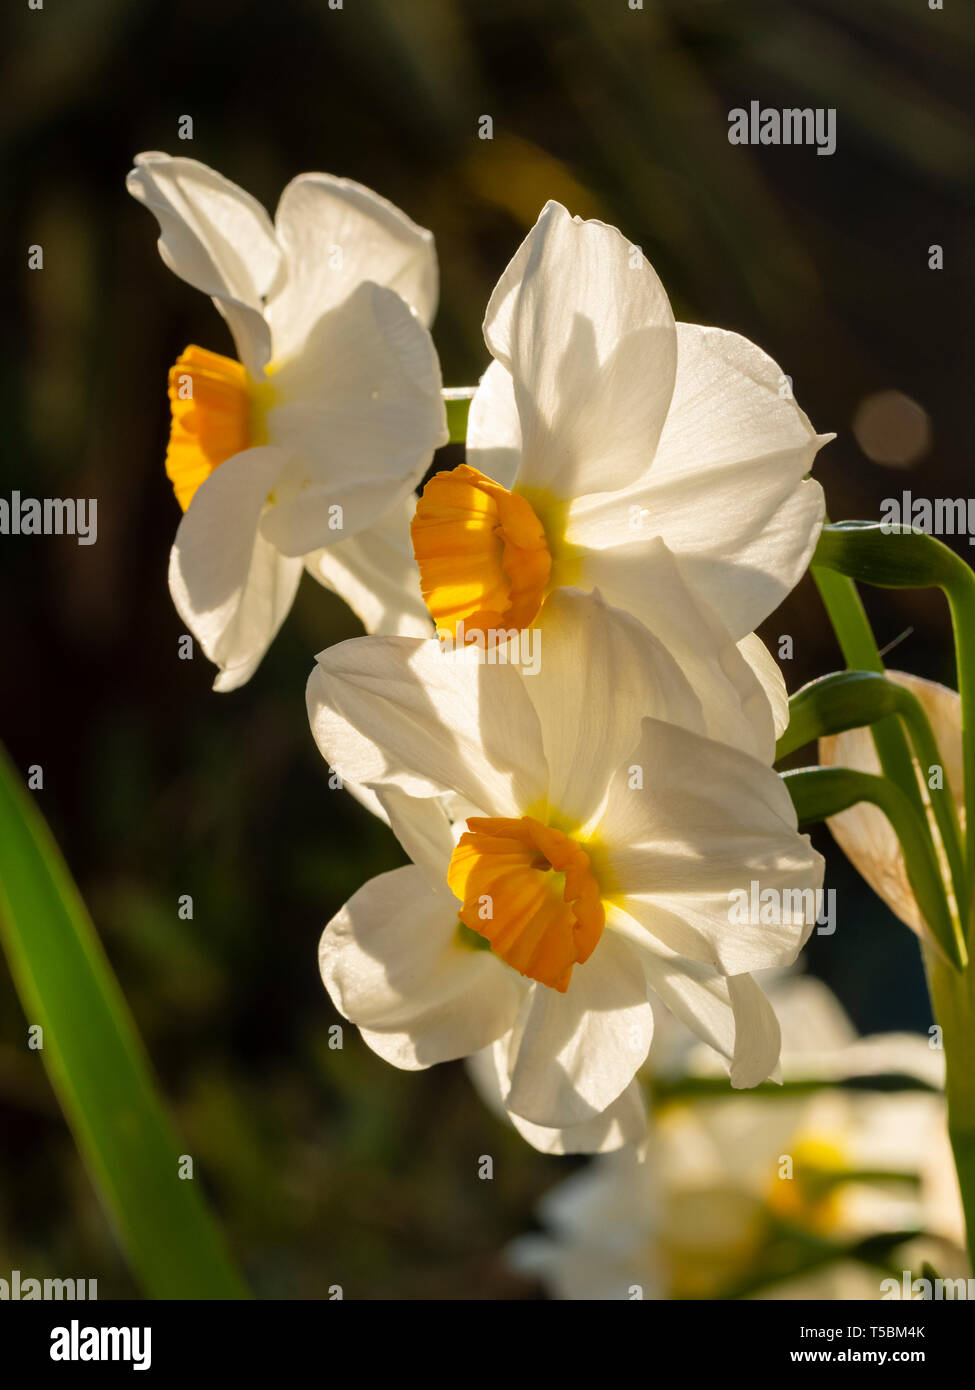 Pure white petals and an orange cup of the fragrant, multi headed, spring flowering hardy bulb, Narcissus tazetta 'Cragford' Stock Photo